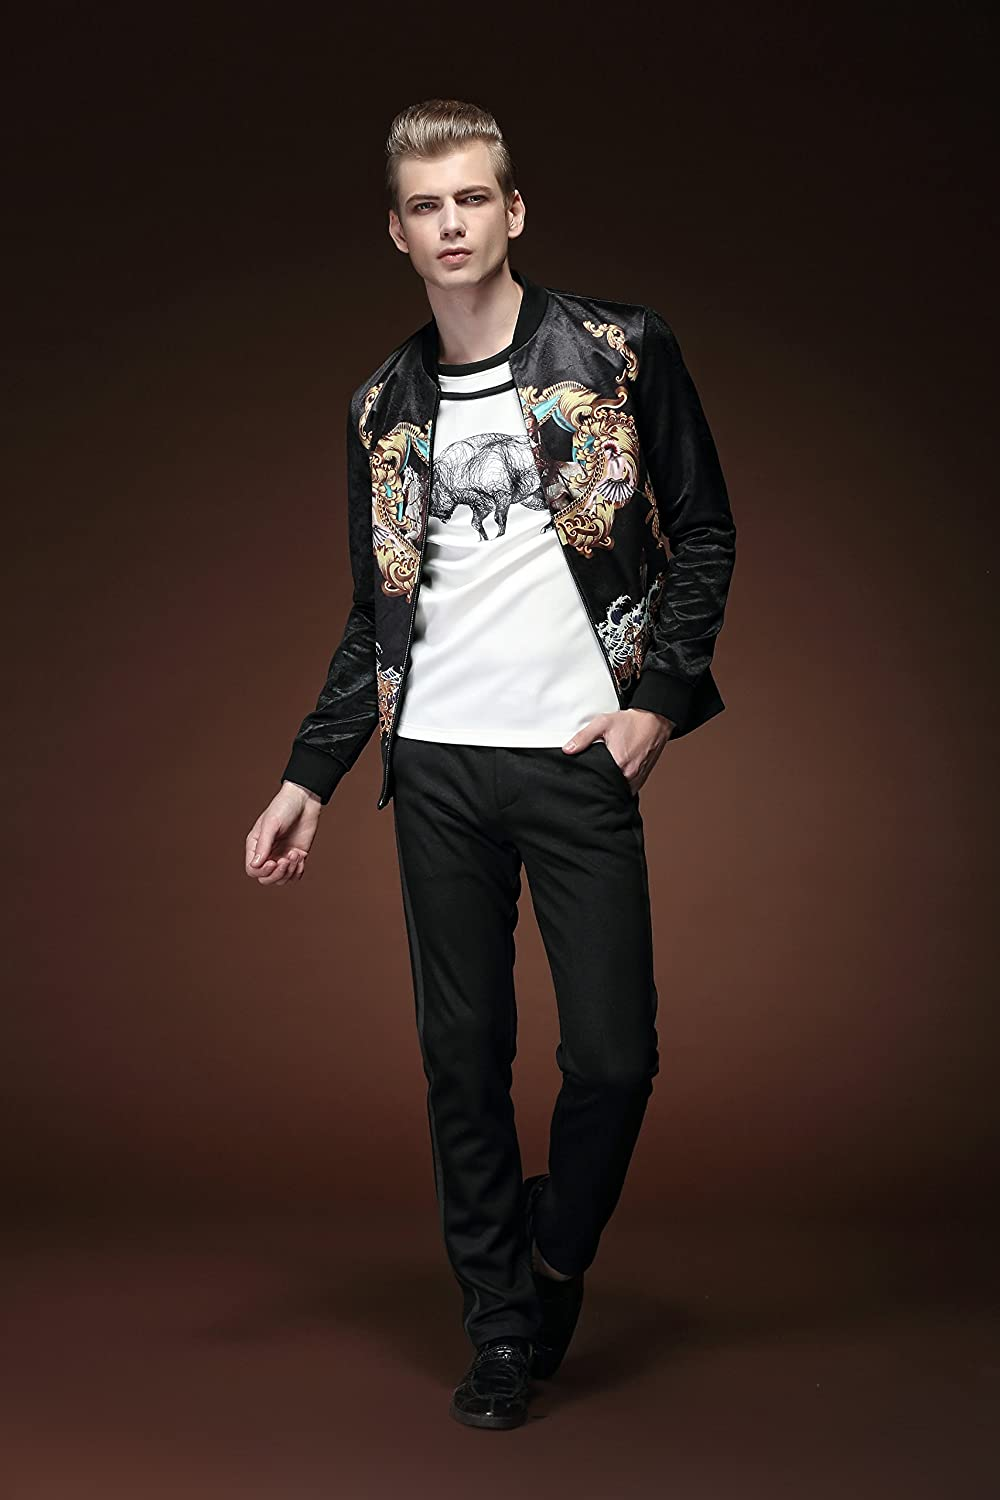 FANZHUAN Spring Mens Fashion Black Printed Jacket Faux Horse Fur Material  Slim Fit at Amazon Men s Clothing store  2ec283729